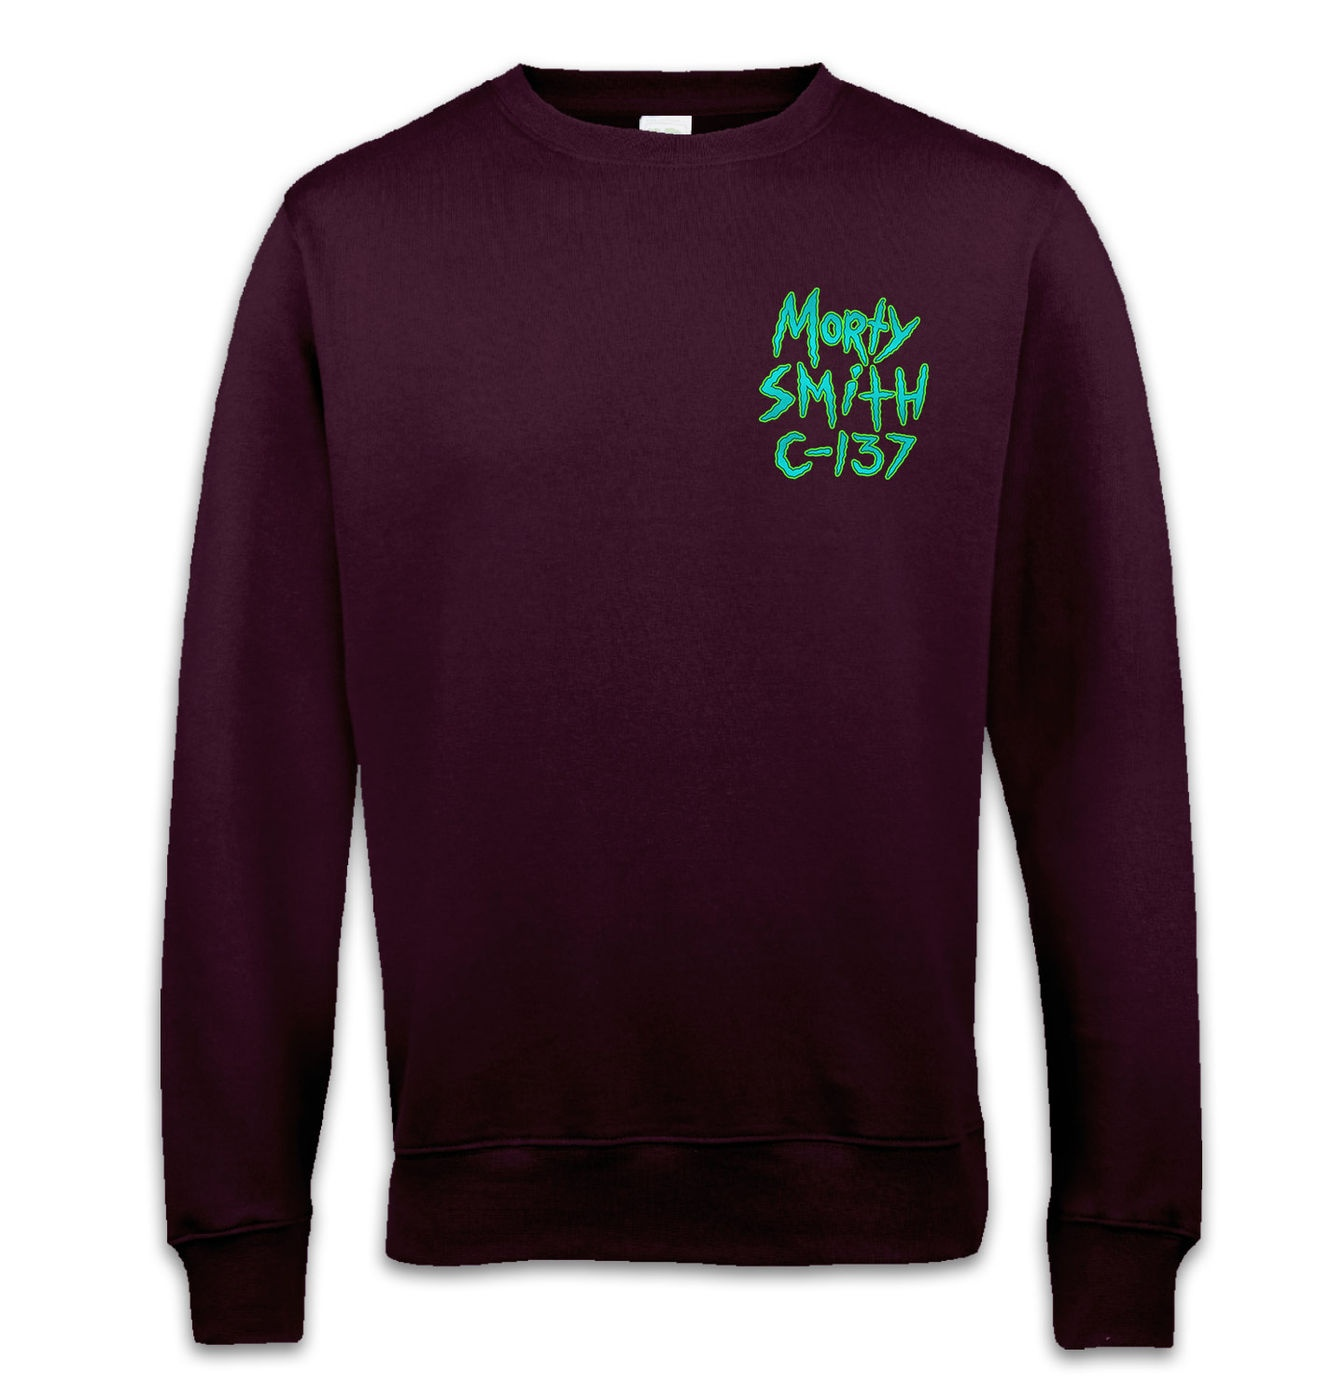 Morty Smith C-137 sweatshirt by Something Geeky